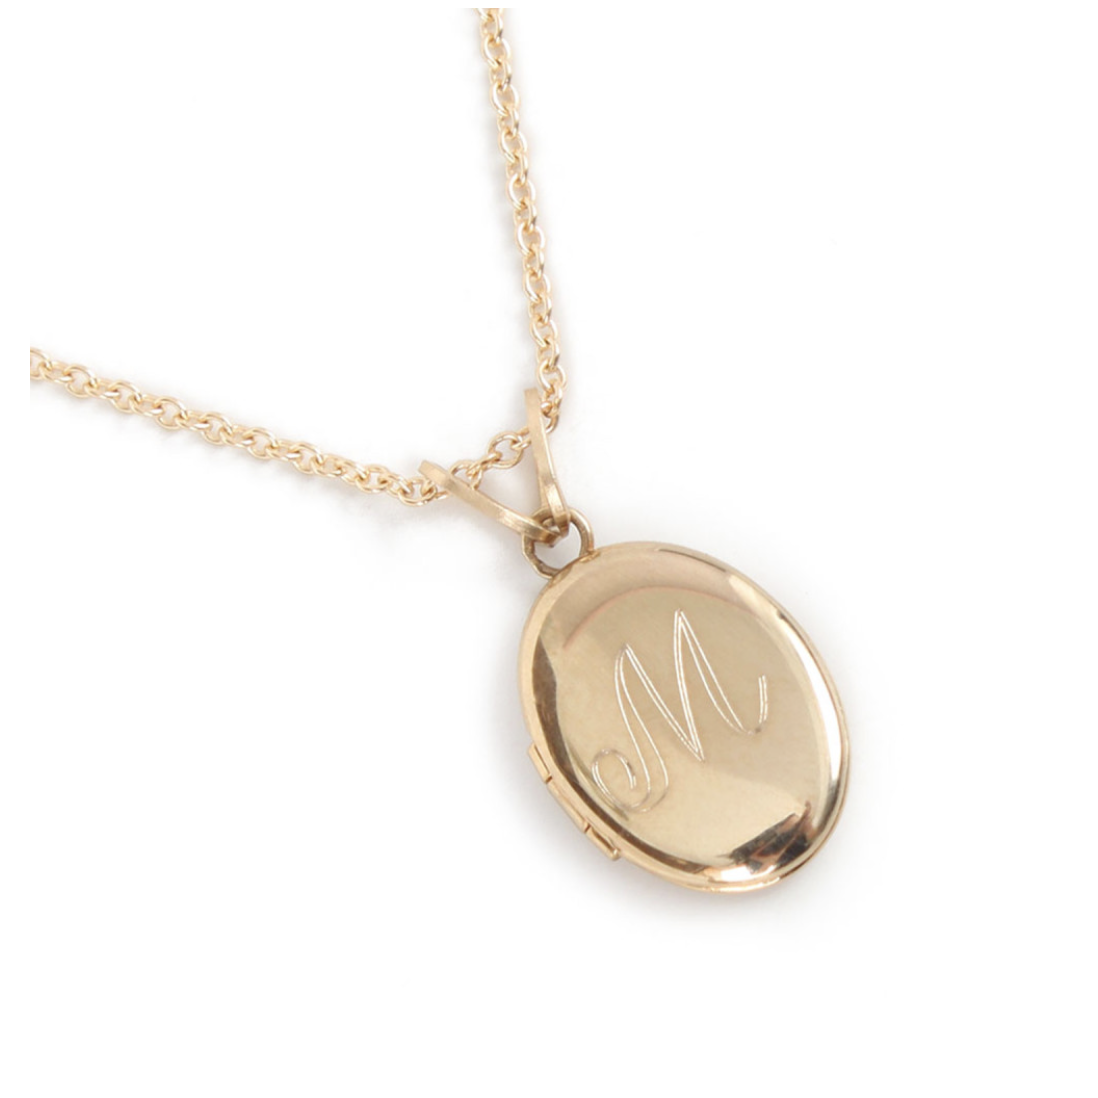 Dollhouse Locket - $168, www.CatbirdNYC.com